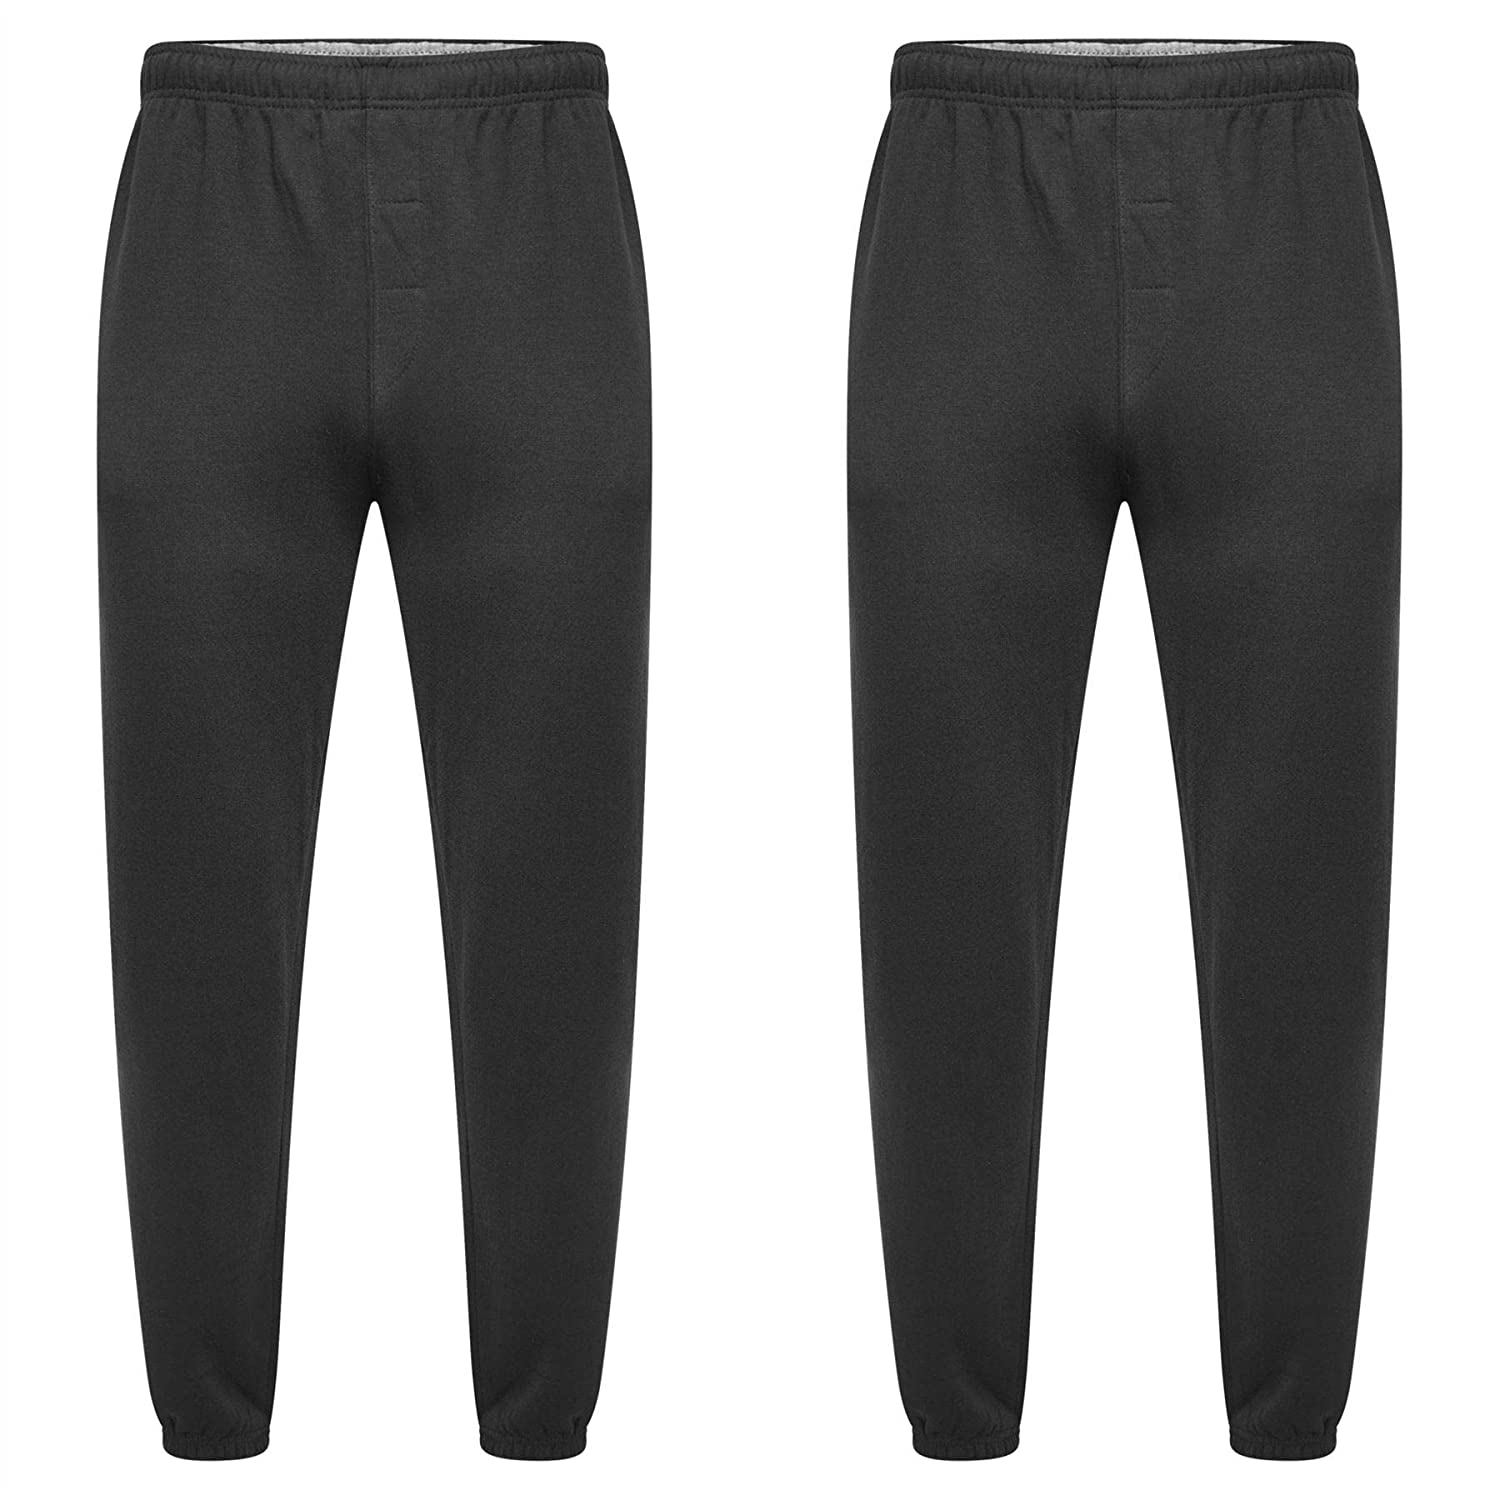 professional design another chance save up to 80% Style It Up New Mens Fleece Jog Pants Jogging Bottoms Trousers Joggers  Brushed Lining Casual